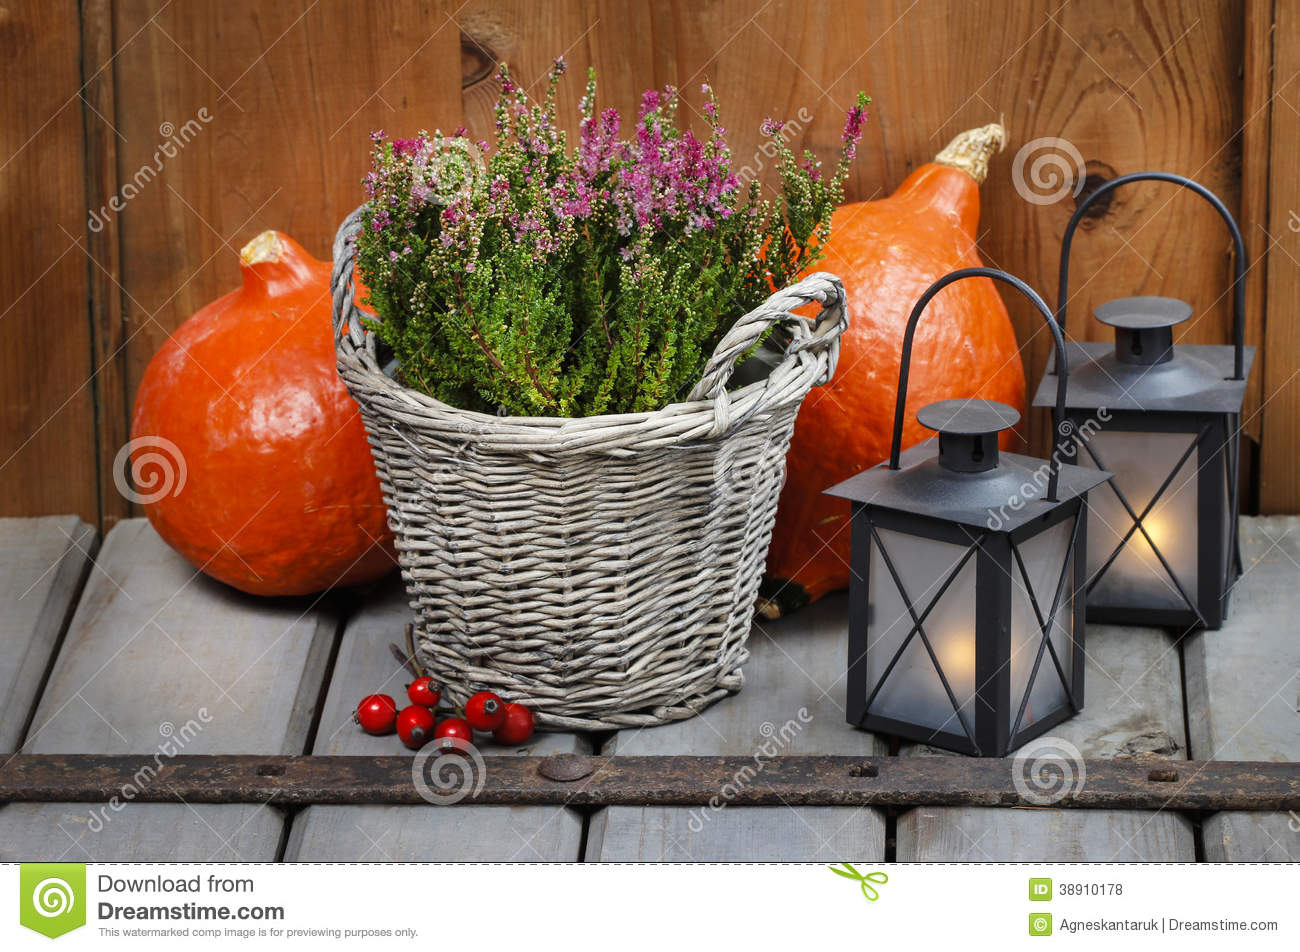 Red Heather In Wicker Basket Stock Photo Image Of Flower Lantern